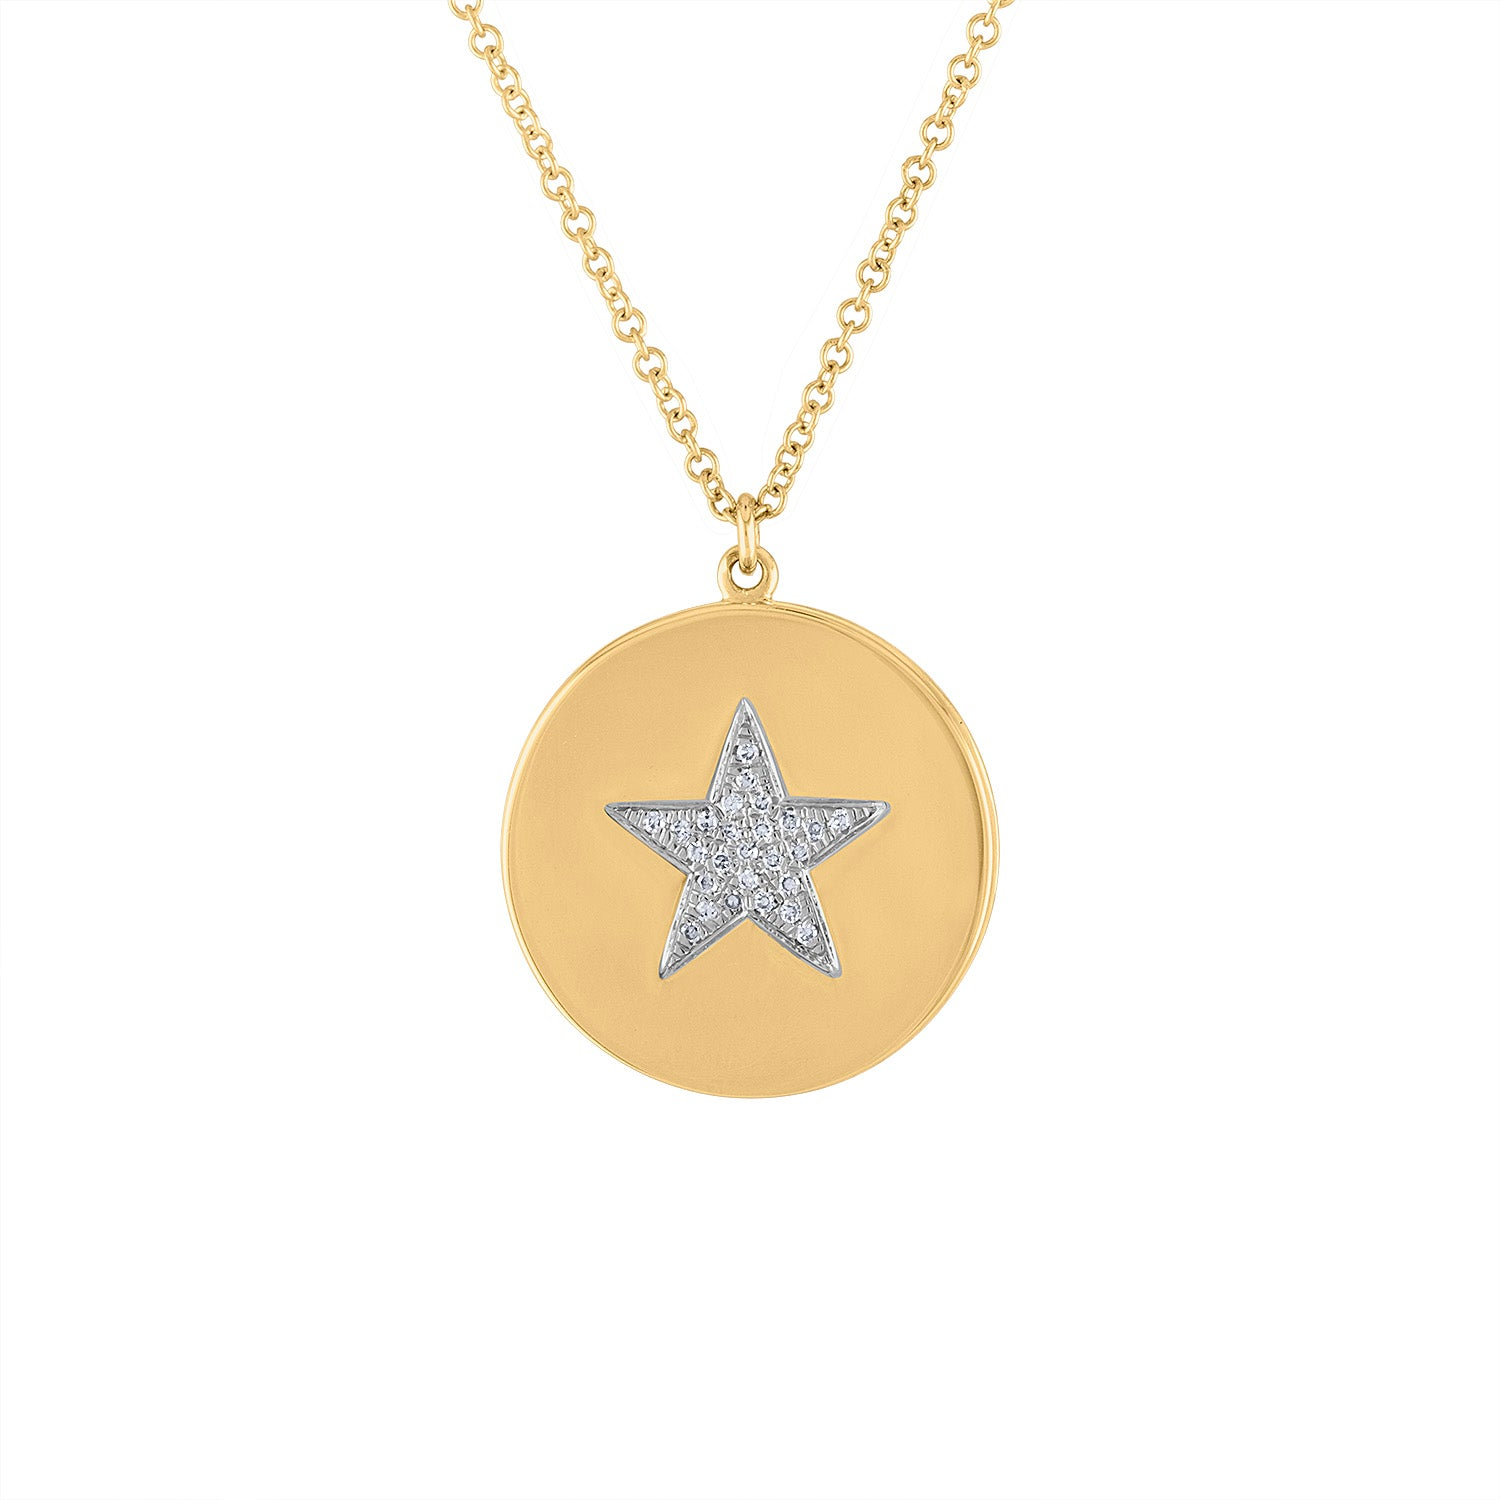 14KT GOLD DIAMOND STAR DISK LOCKET NECKLACE